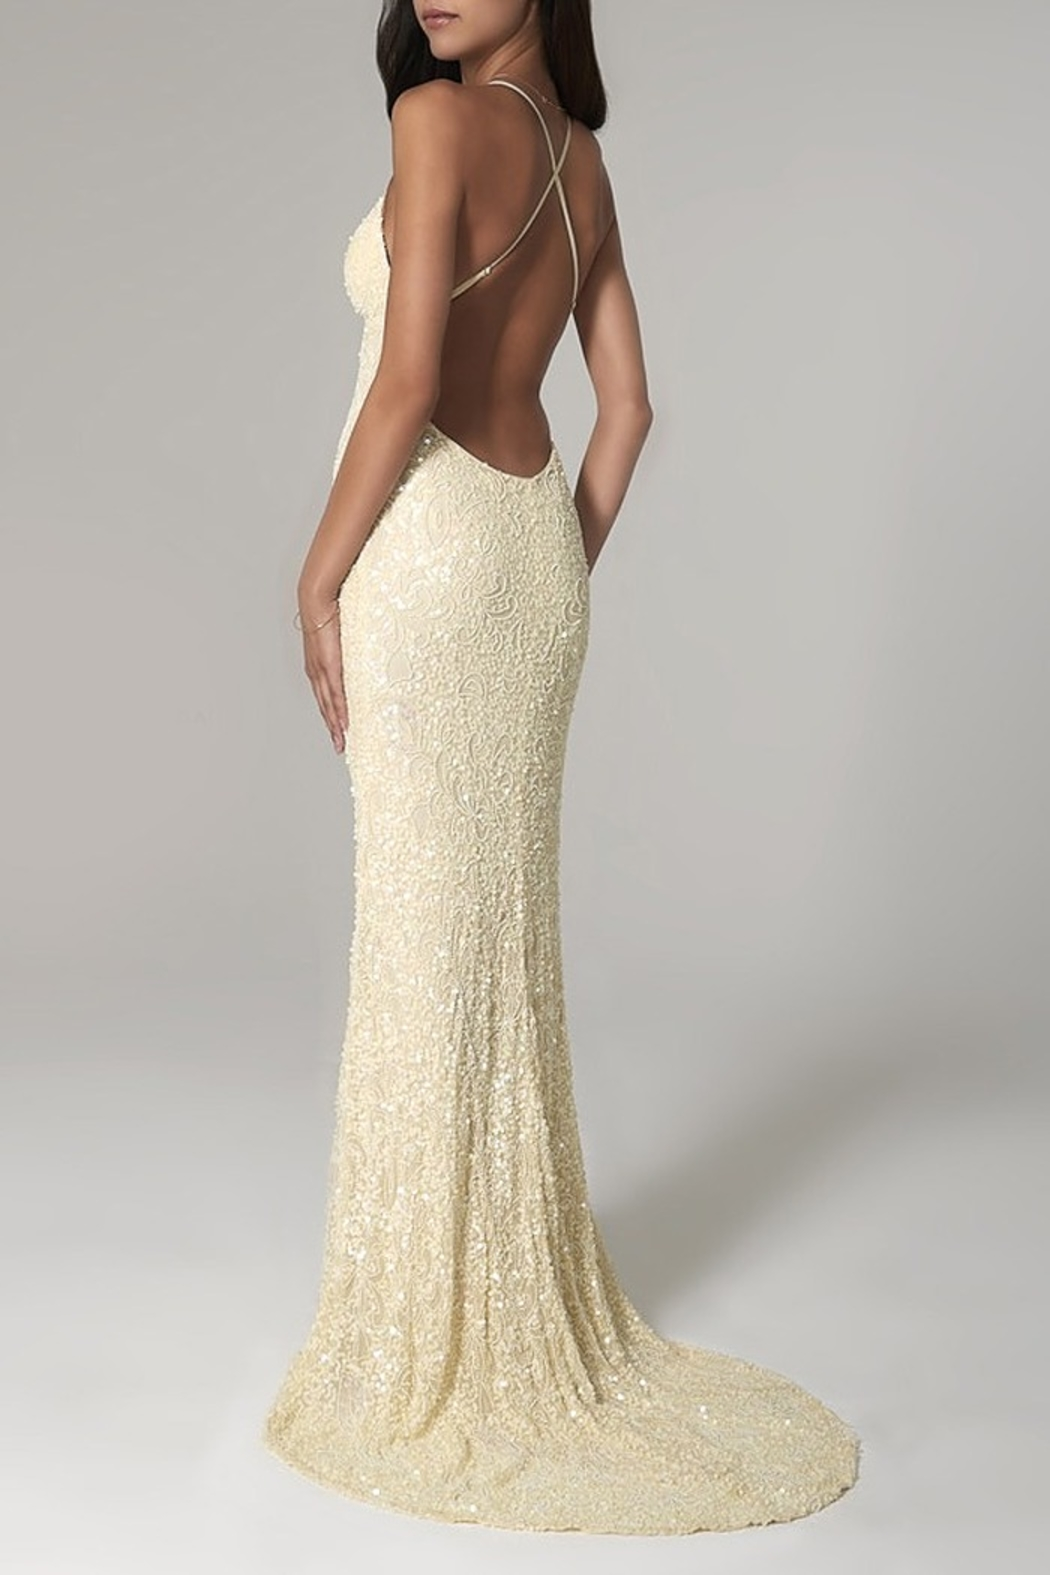 Scala Beaded Paisley Gown w/Low Crisscross Back - Front Full Image